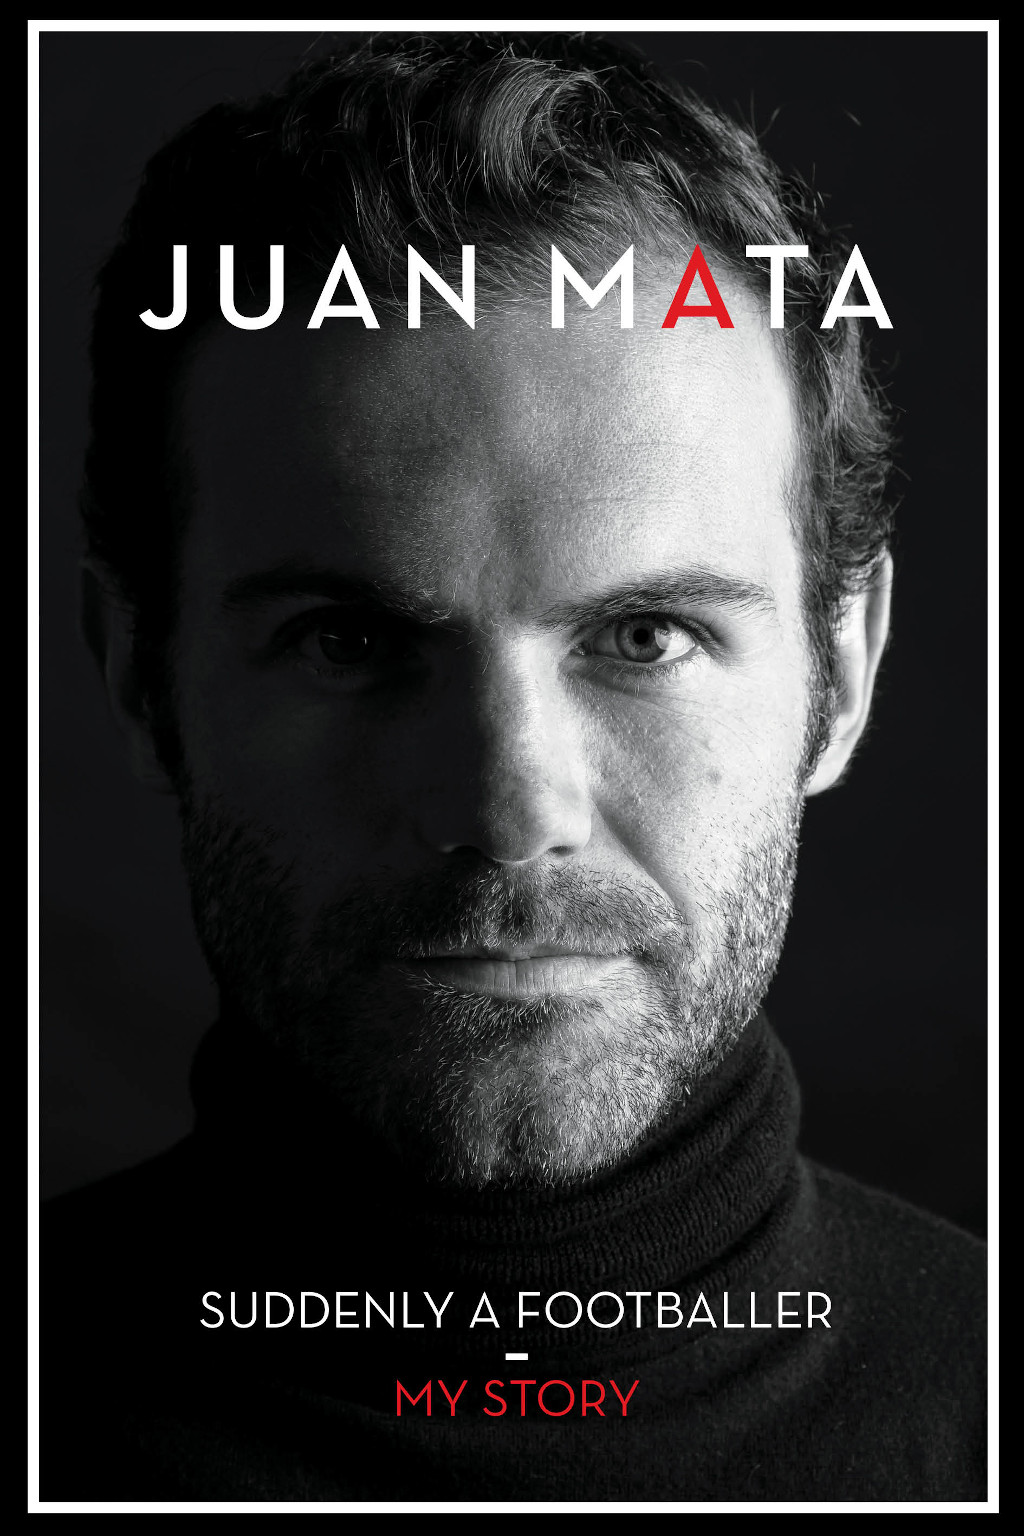 Juan Mata - Suddenly A Footballer